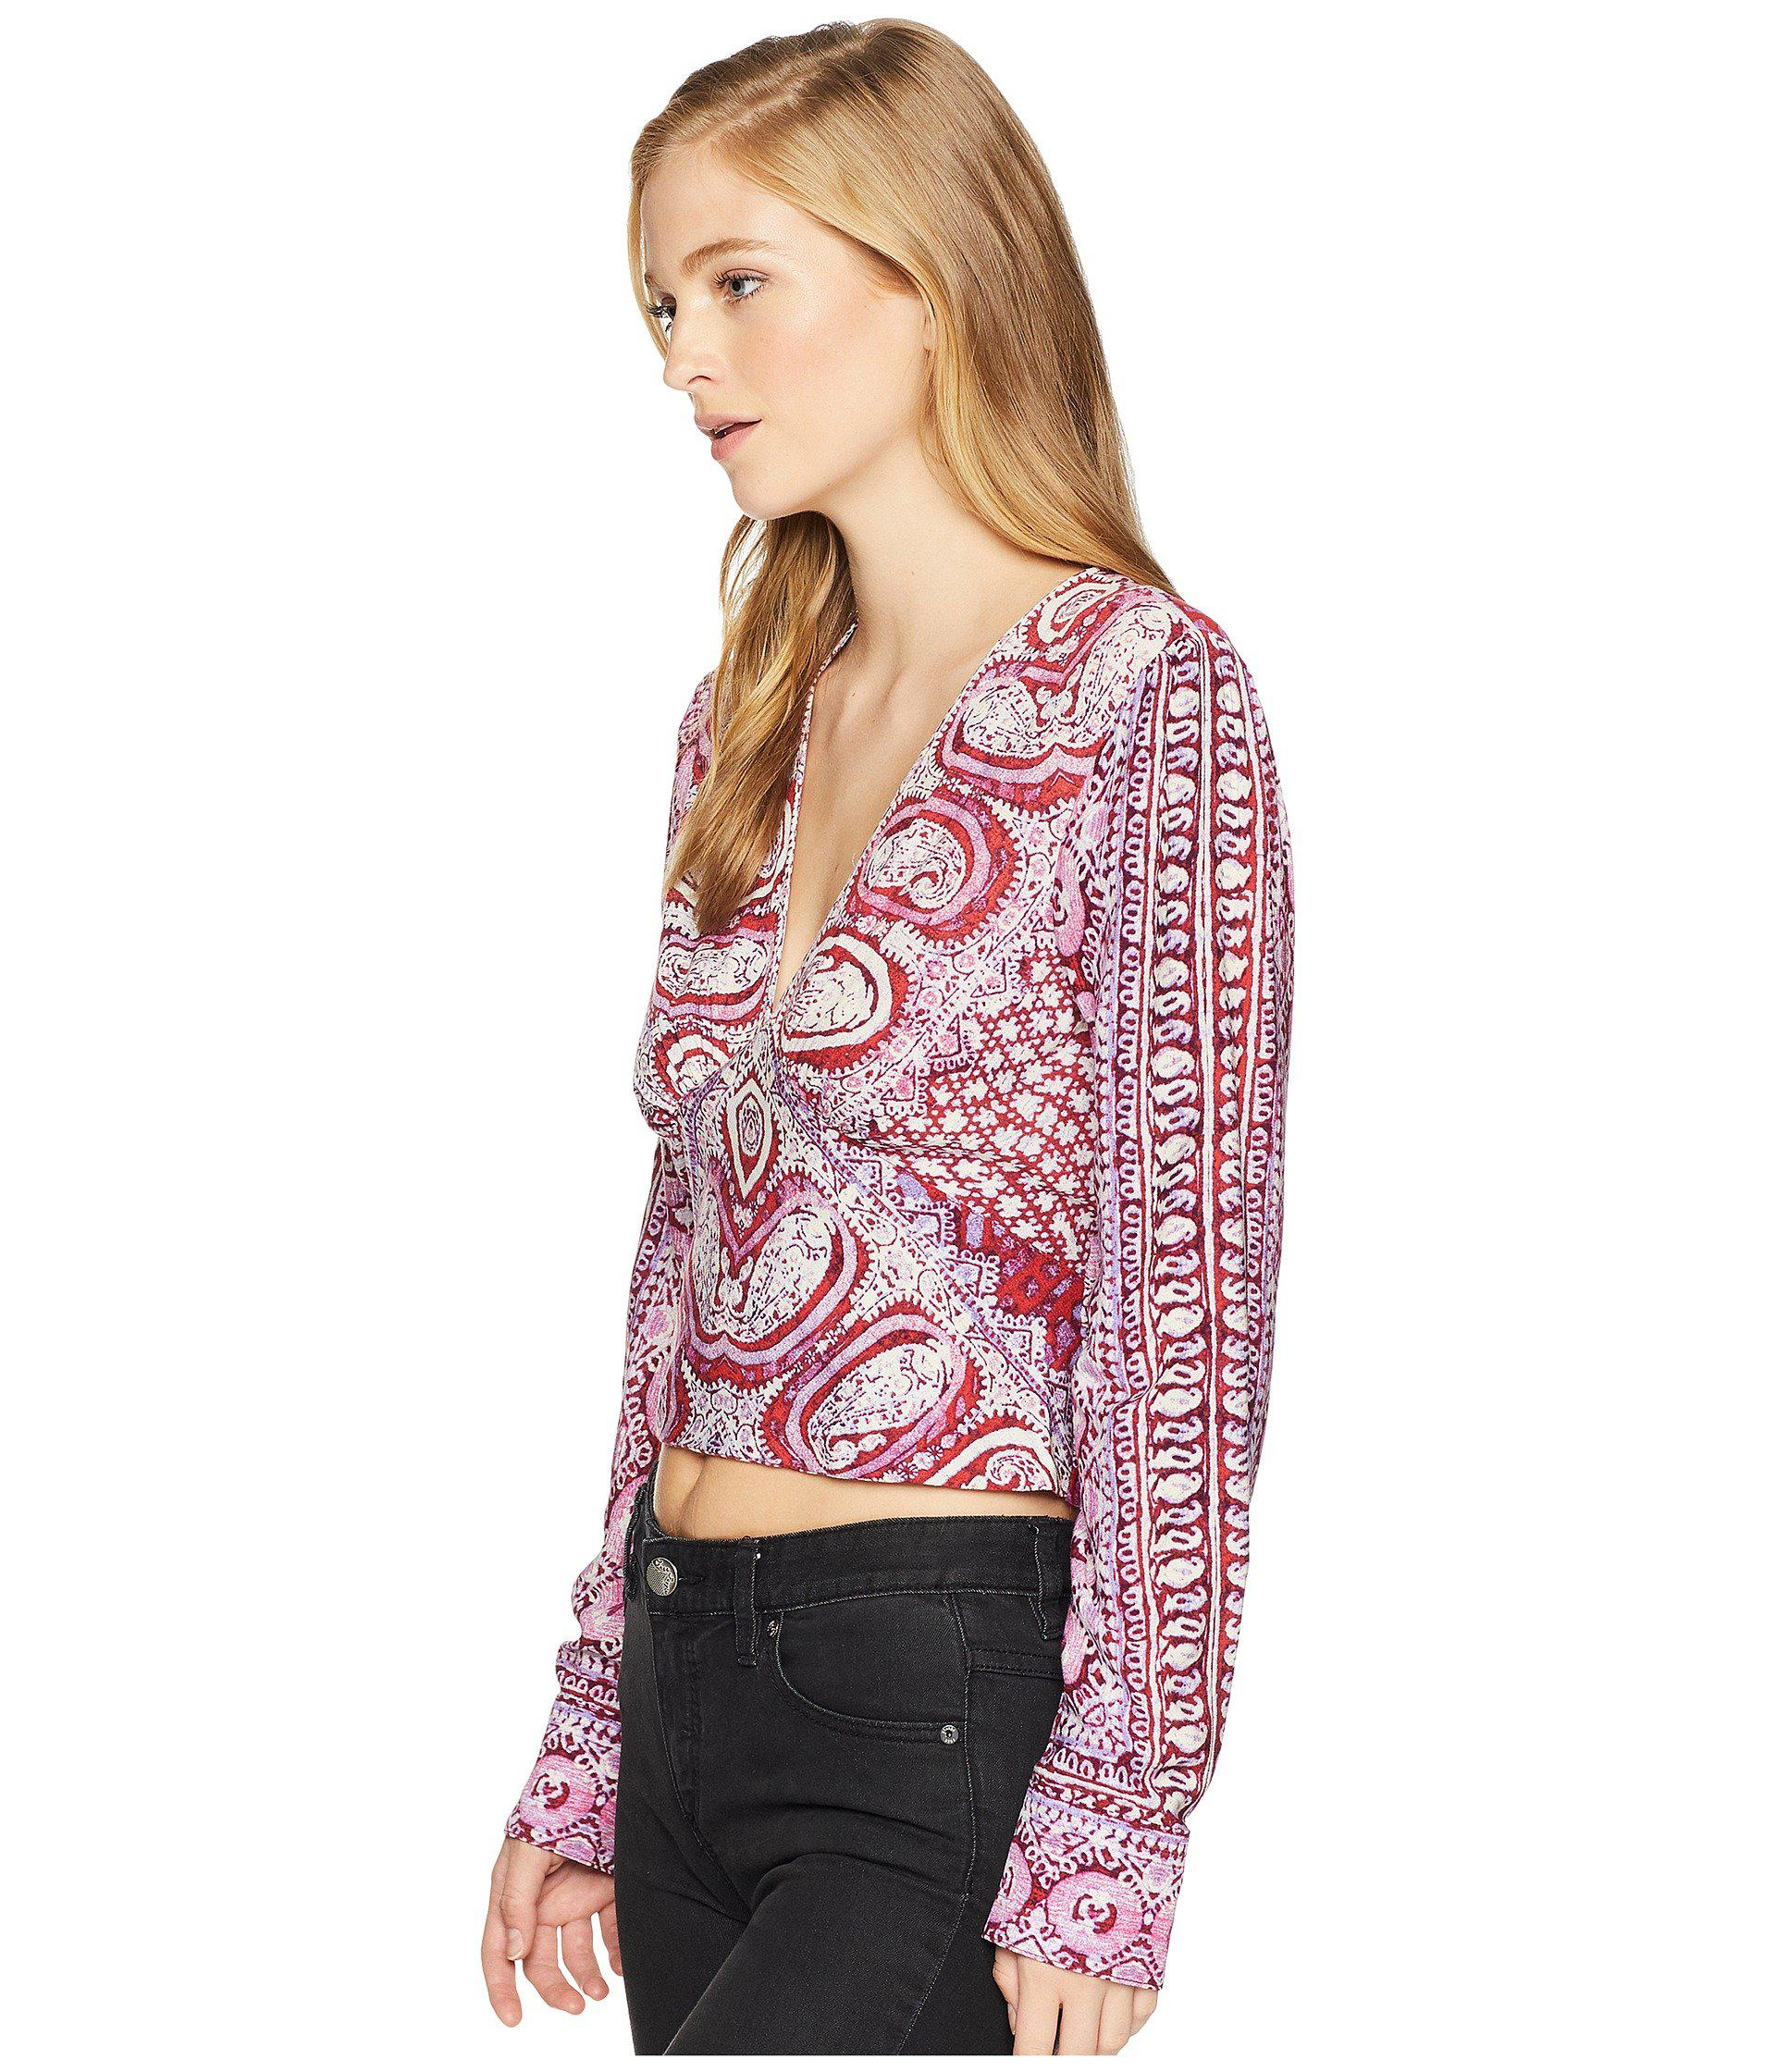 738ef134af992 Lyst - Free People Wild And Free Blouse in Red